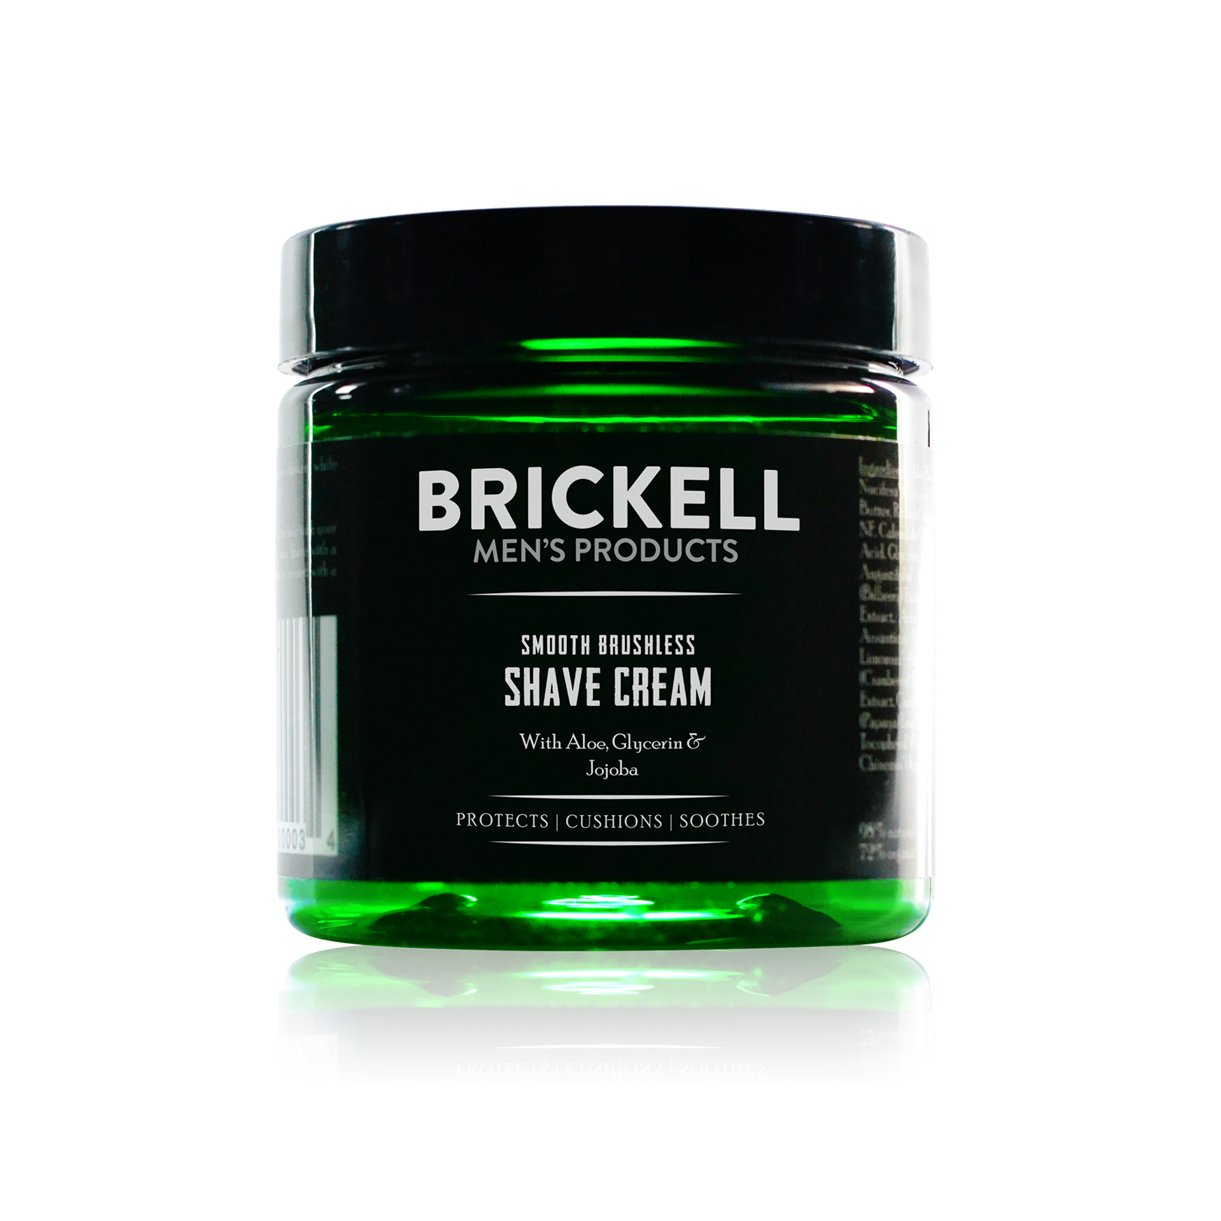 Brickell Smooth Brushless Shave Cream for Men Travel Sized (2 oz)